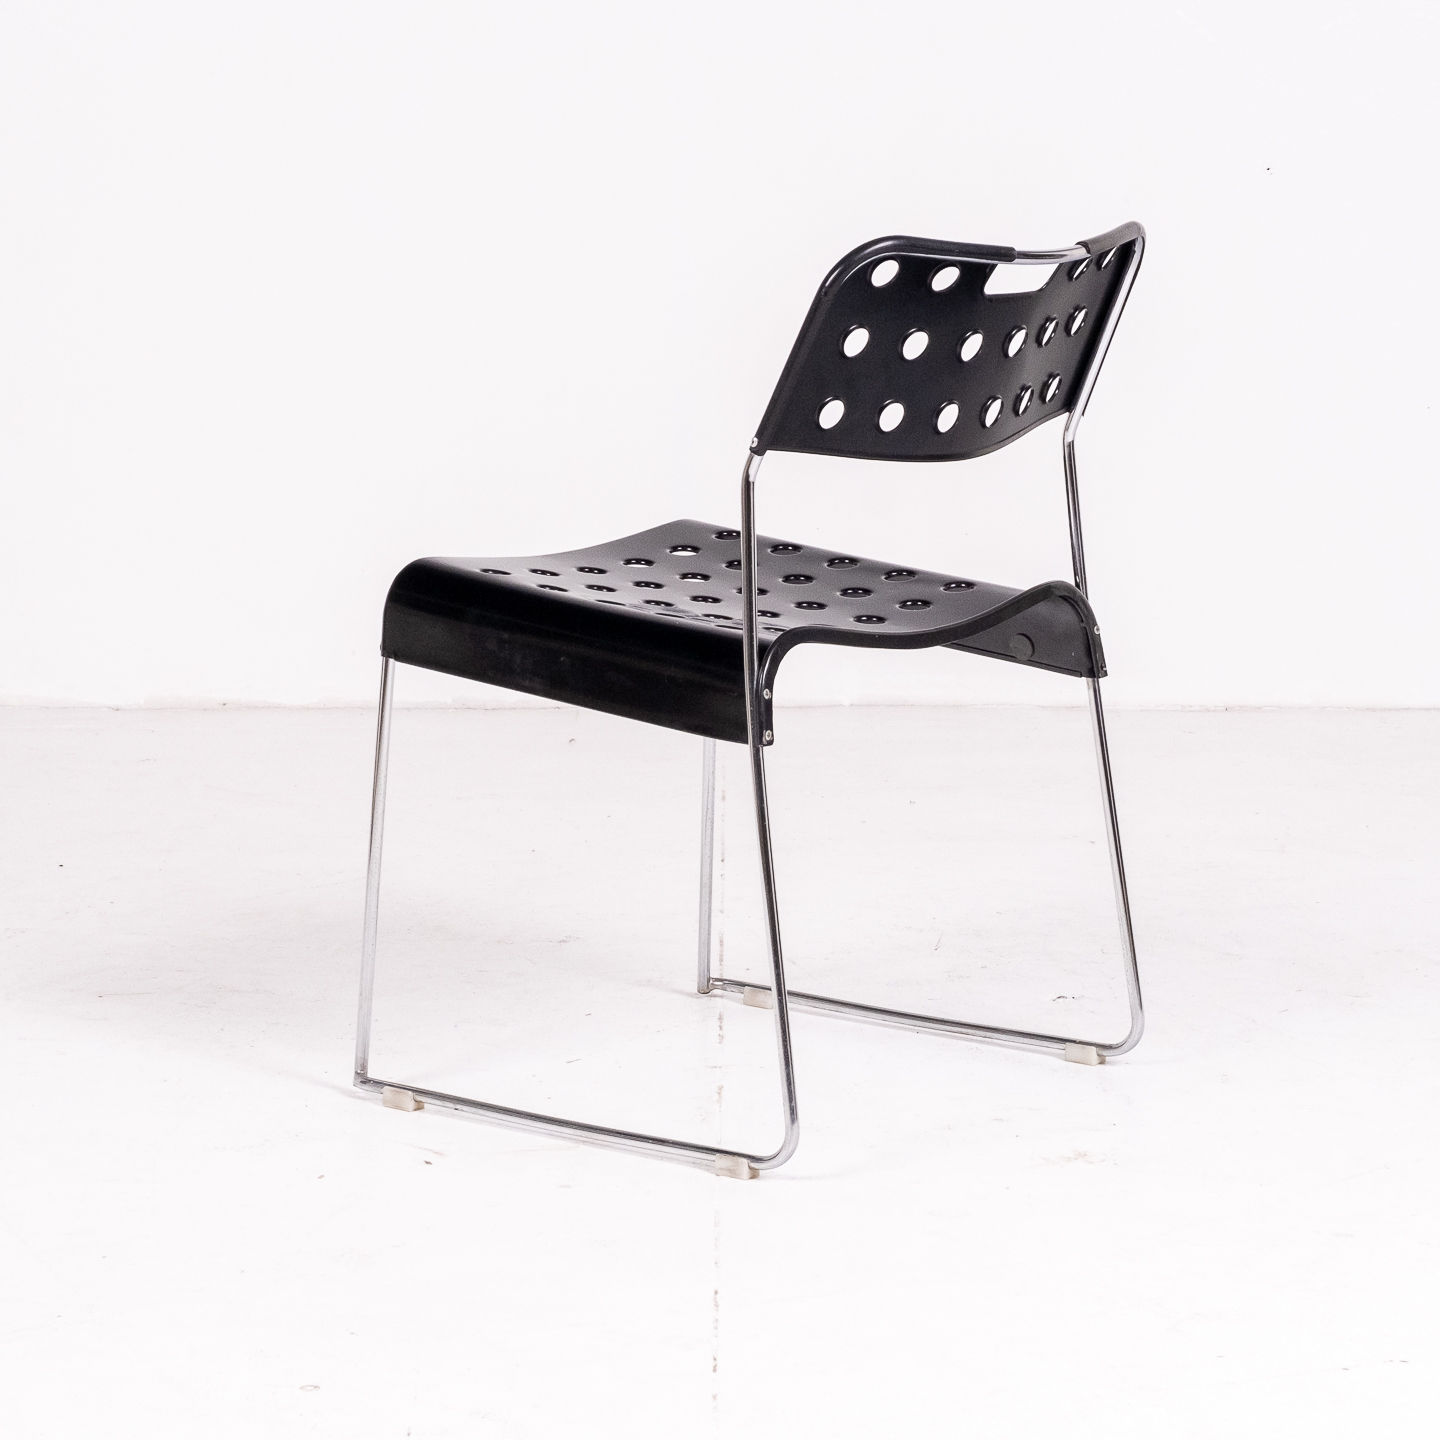 Model 'omstak' Chair By Rodney Kinsman For Bieffeplast, Italy, 1971 06